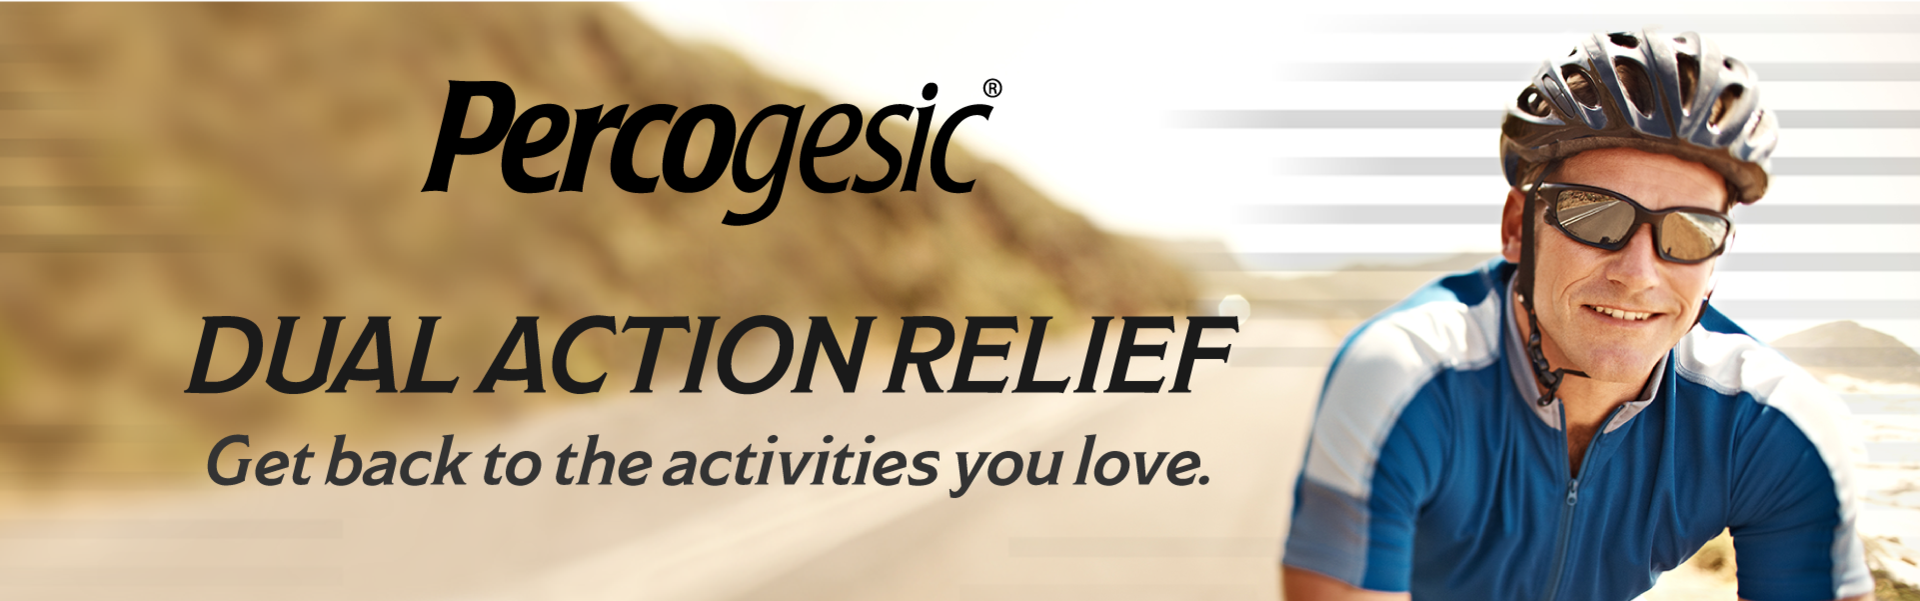 Percogesic® Dual Action Relief | Get back to the activities you love.